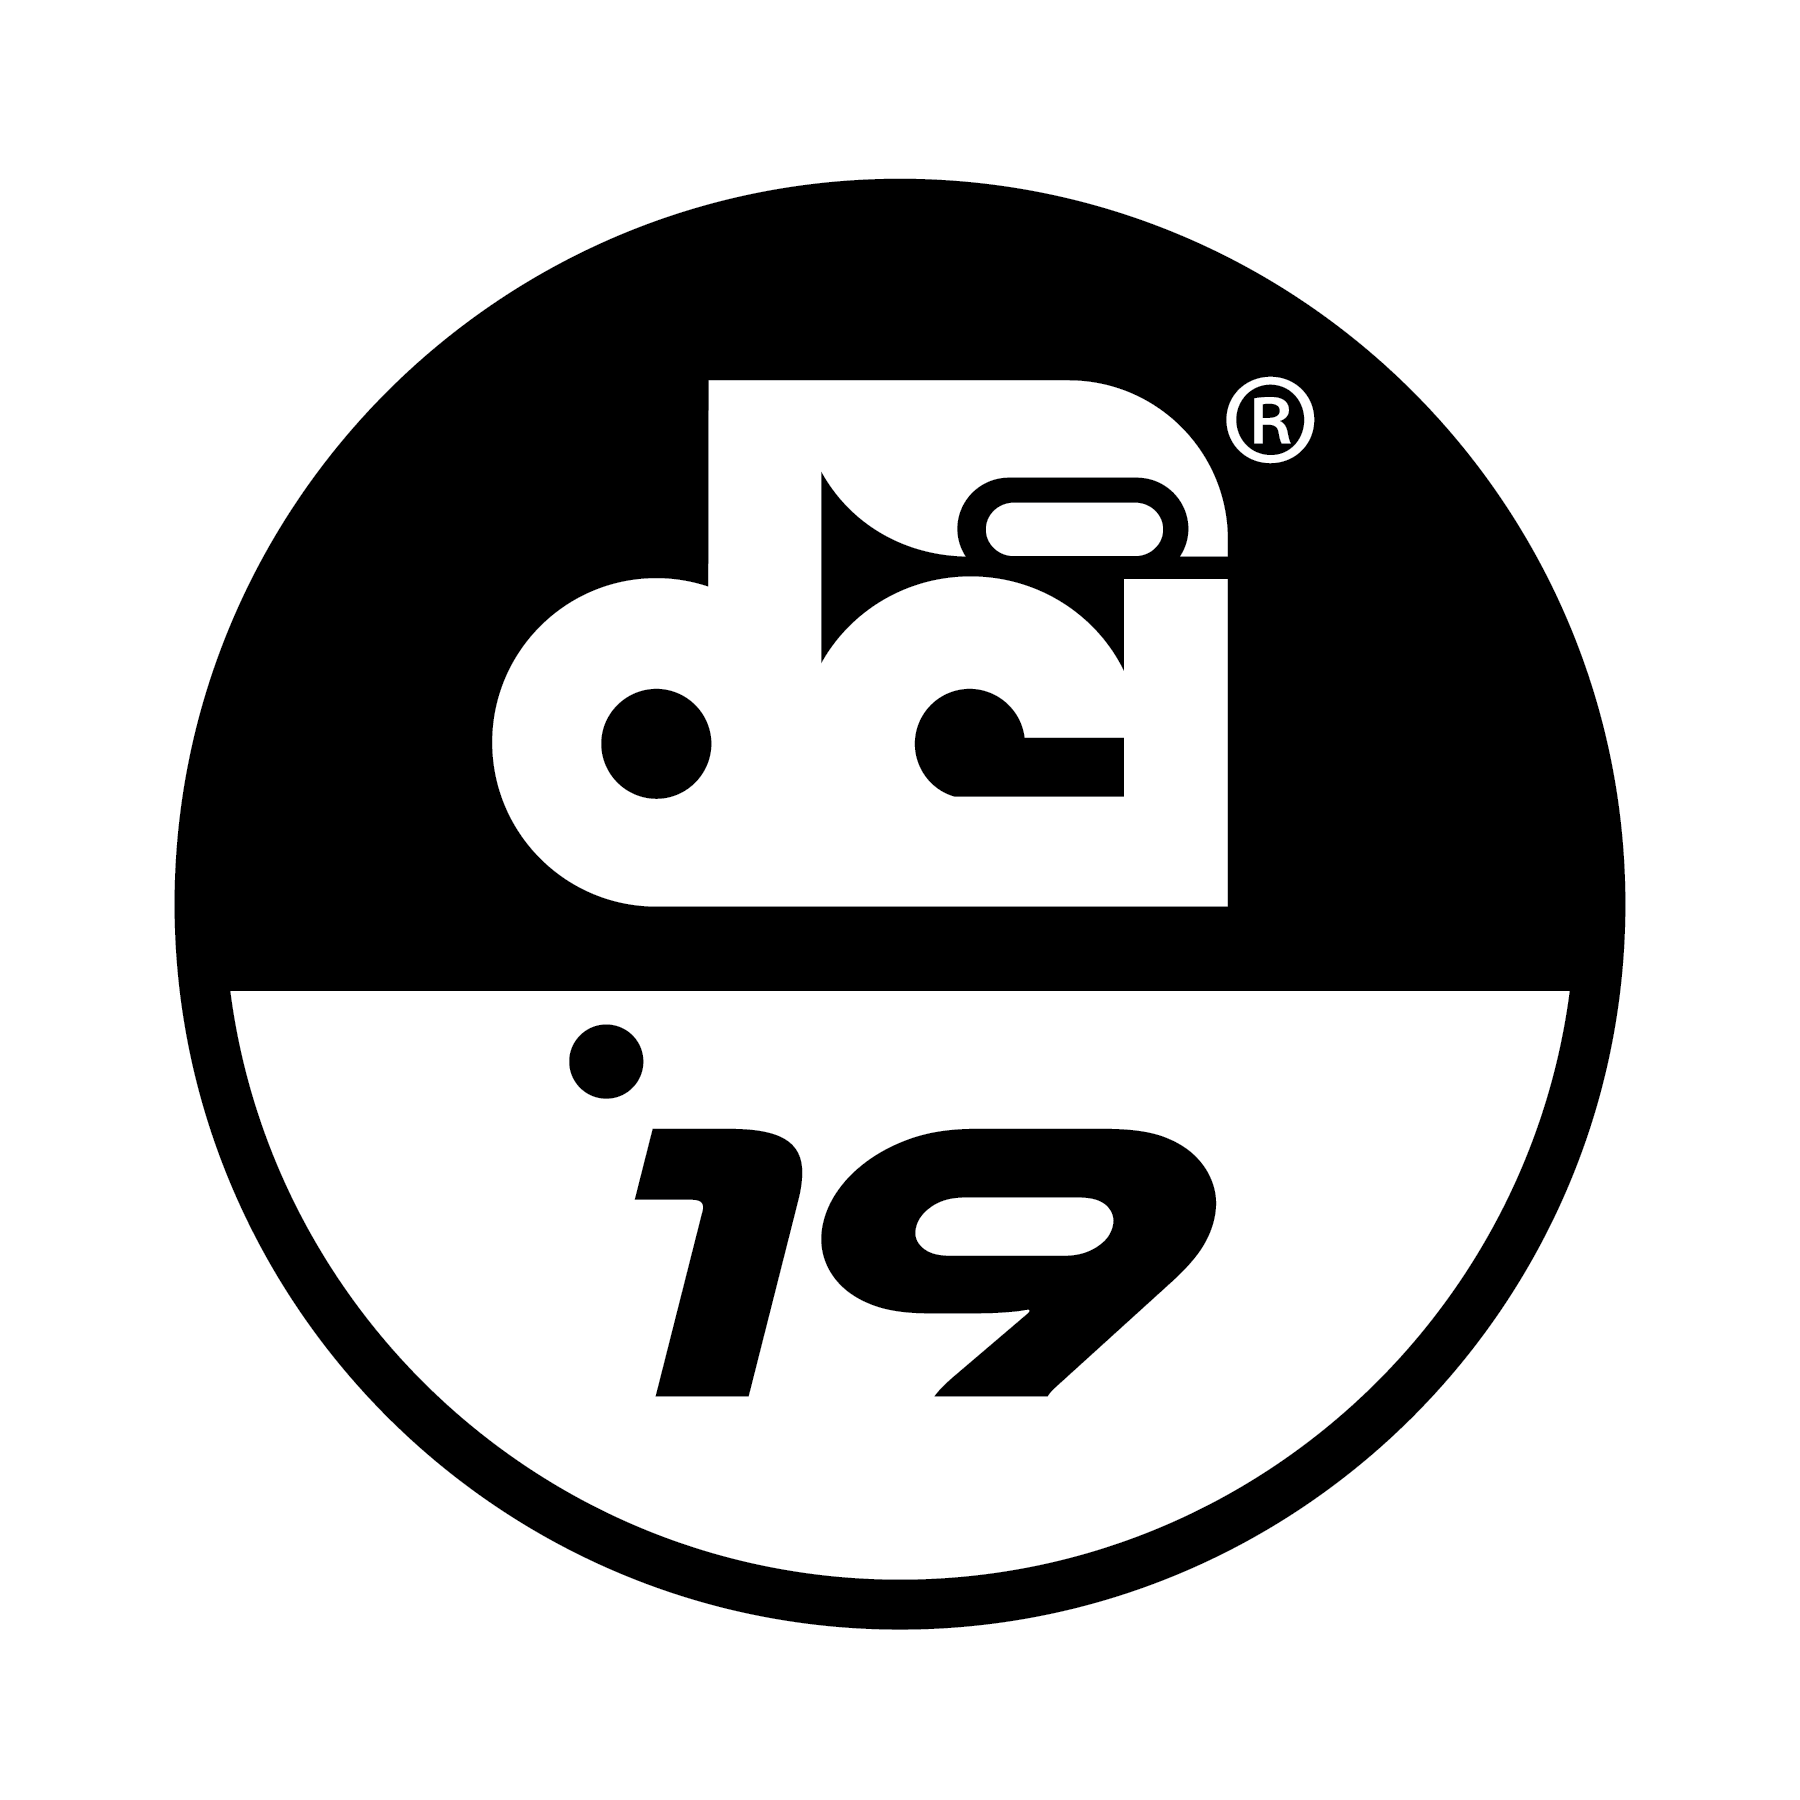 DCI 2019 Tour 1C Black (1)-01.png